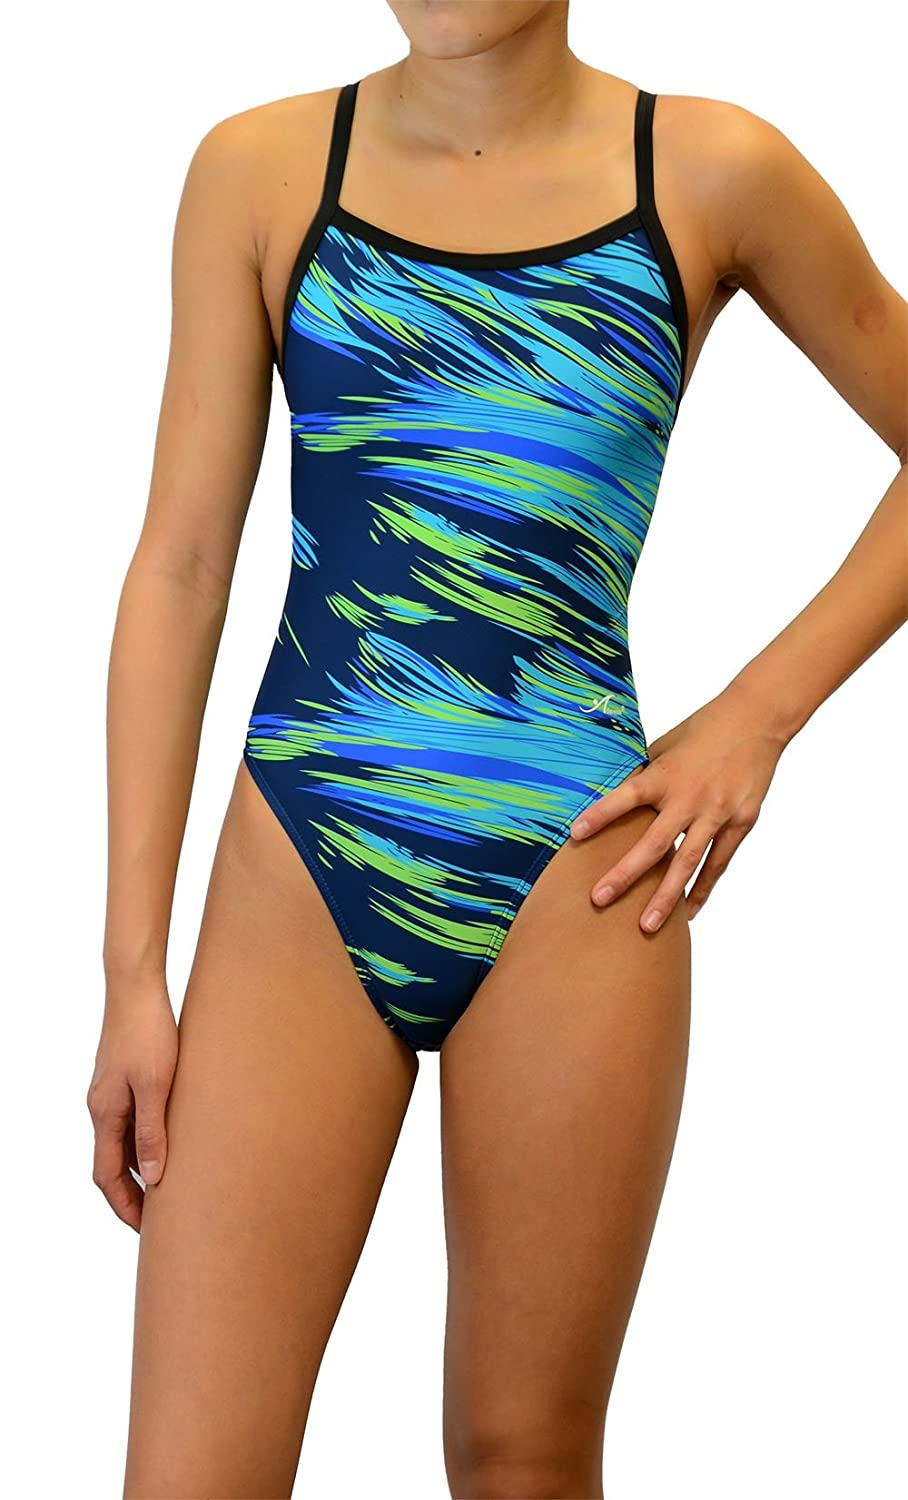 Adoretex Girls//Womens Thin Strap Pro Athletic Team Swimsuit